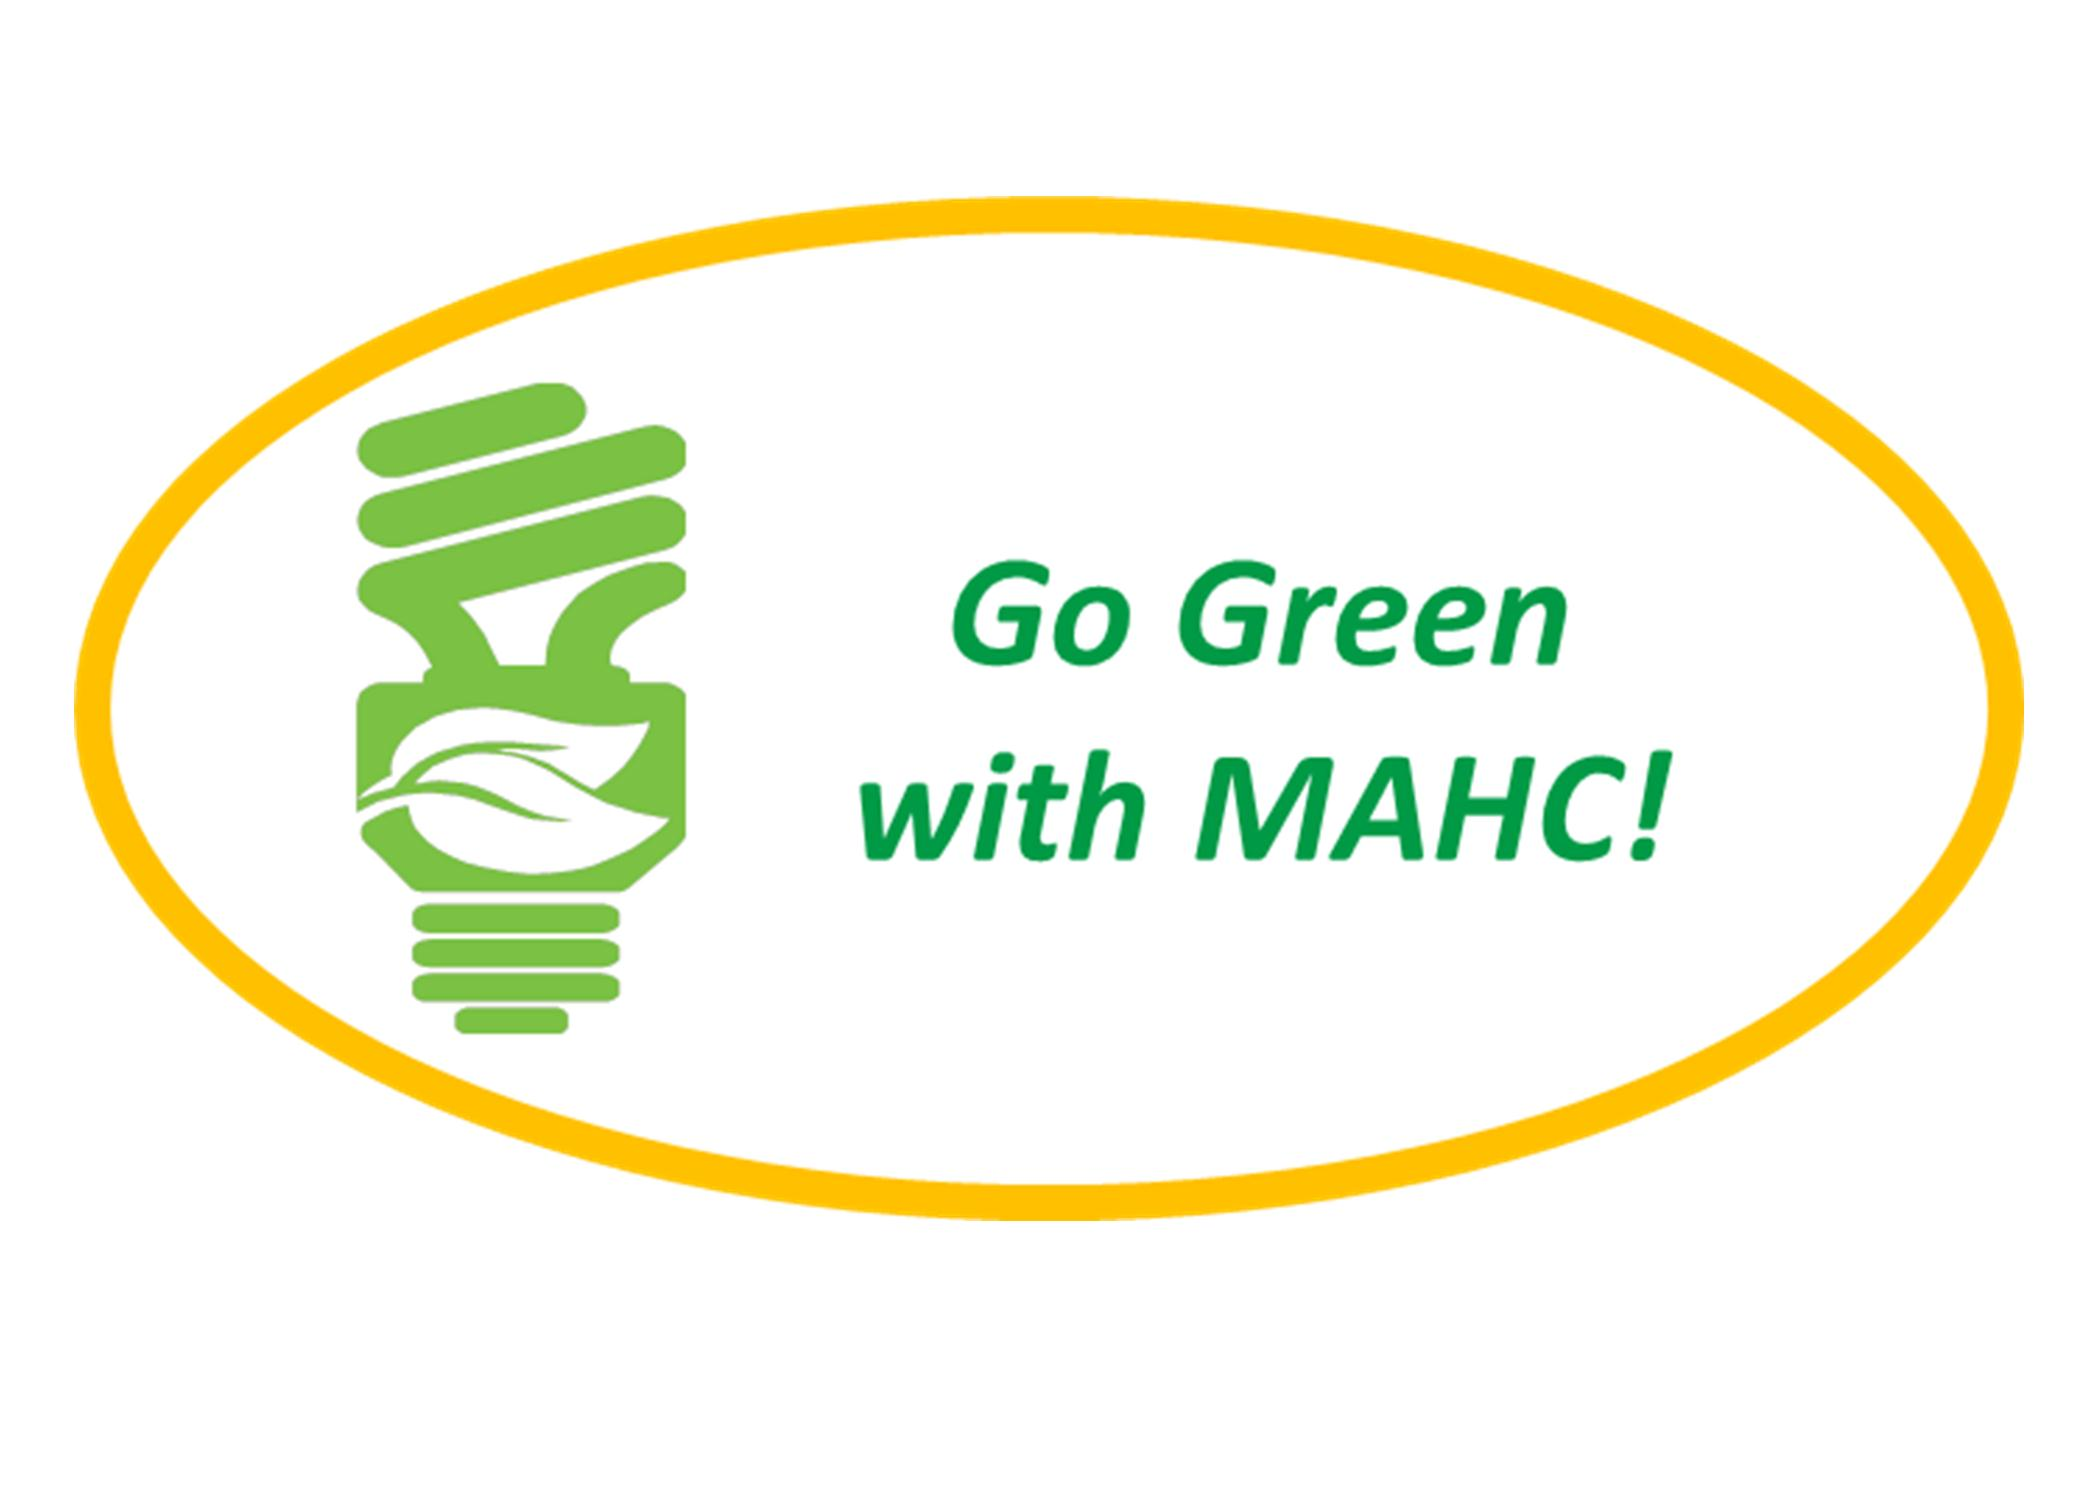 Go Green with MAHC logo